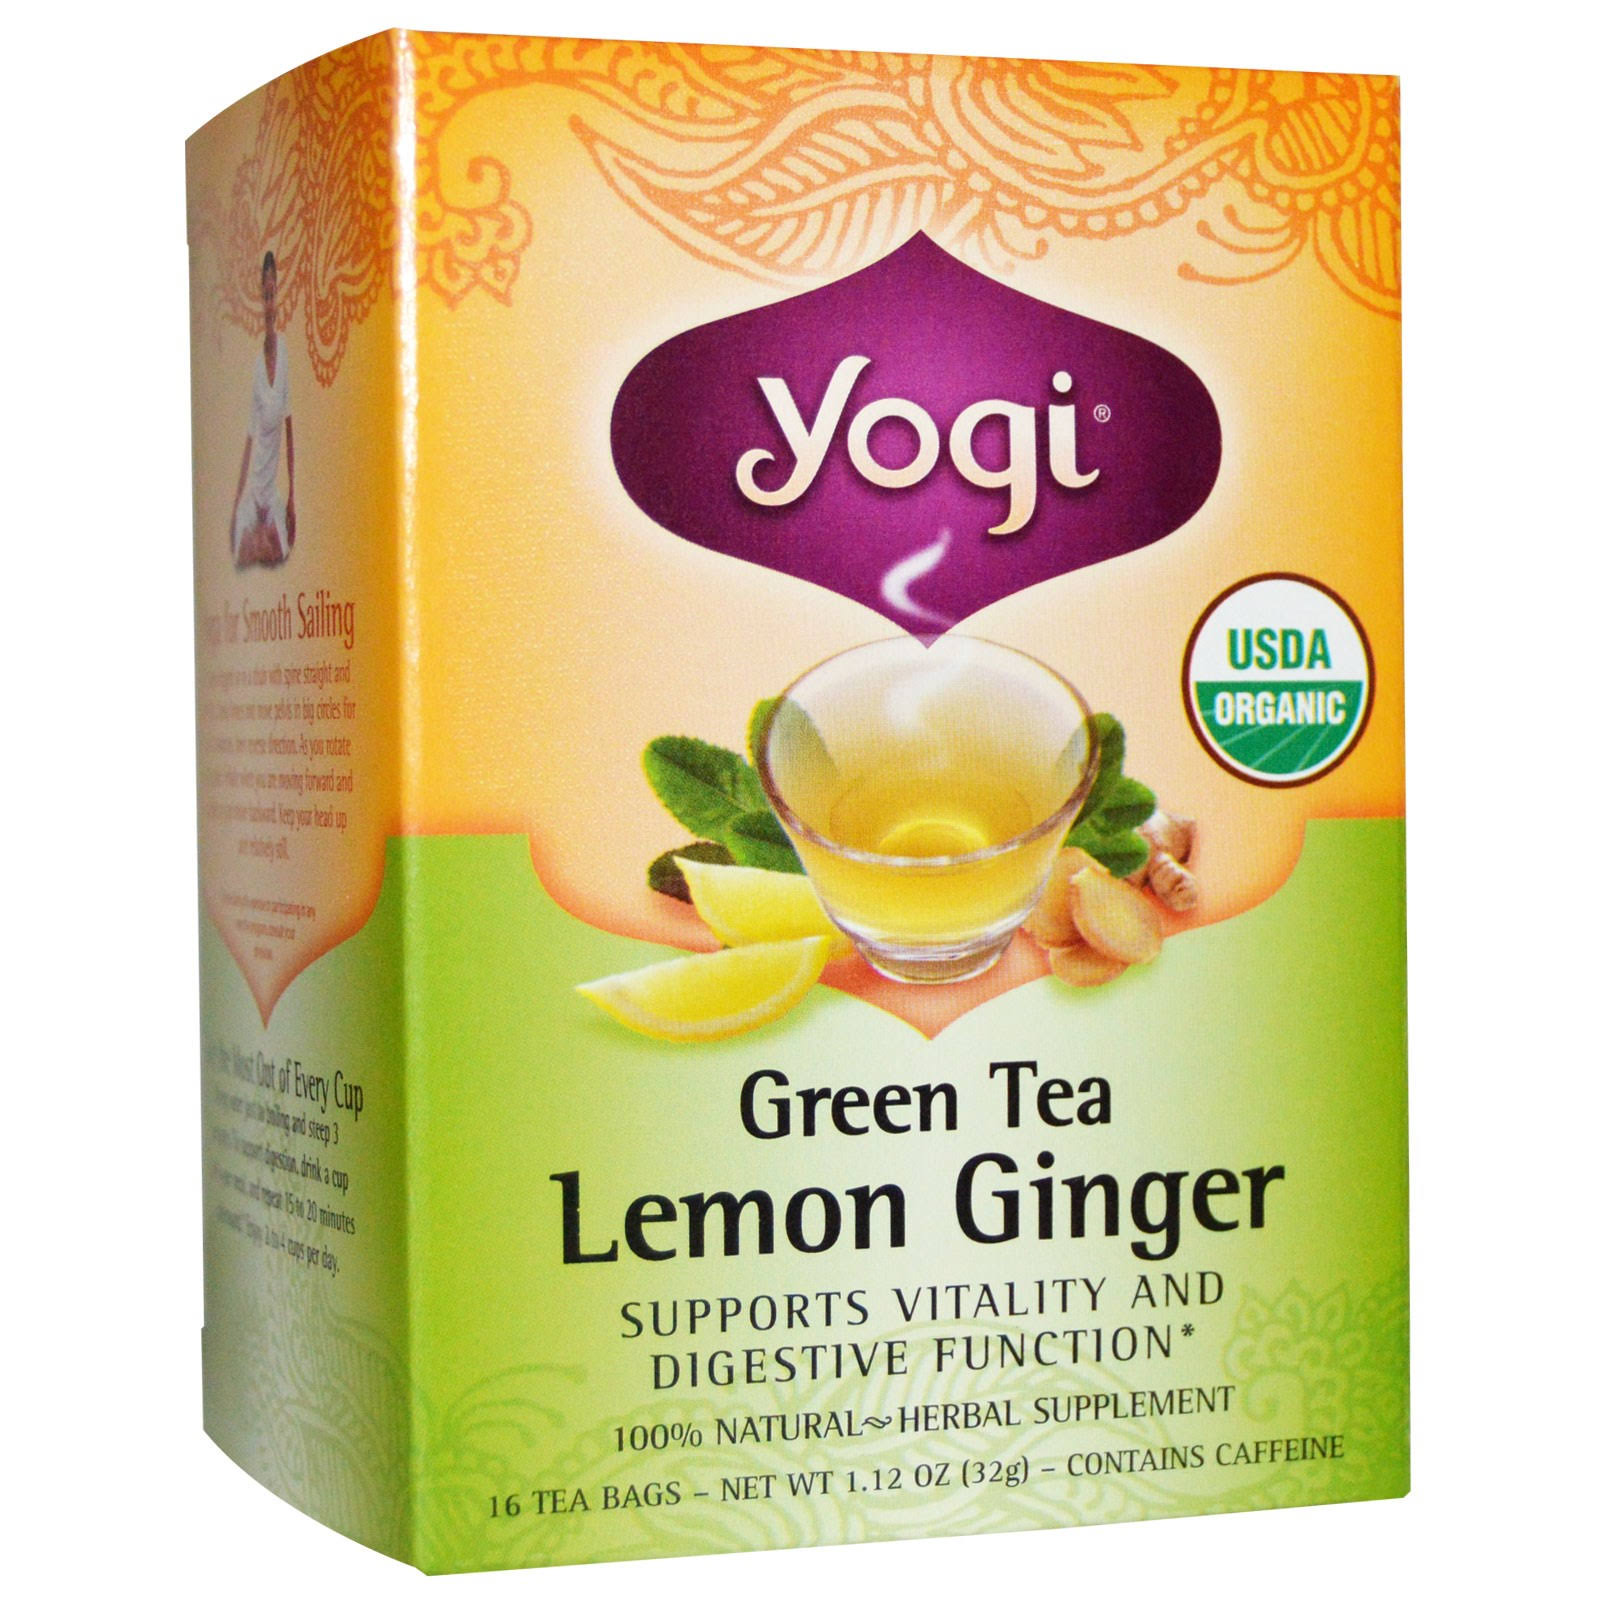 Yogi Tea Green Tea - Lemon Ginger, 16 Tea Bags